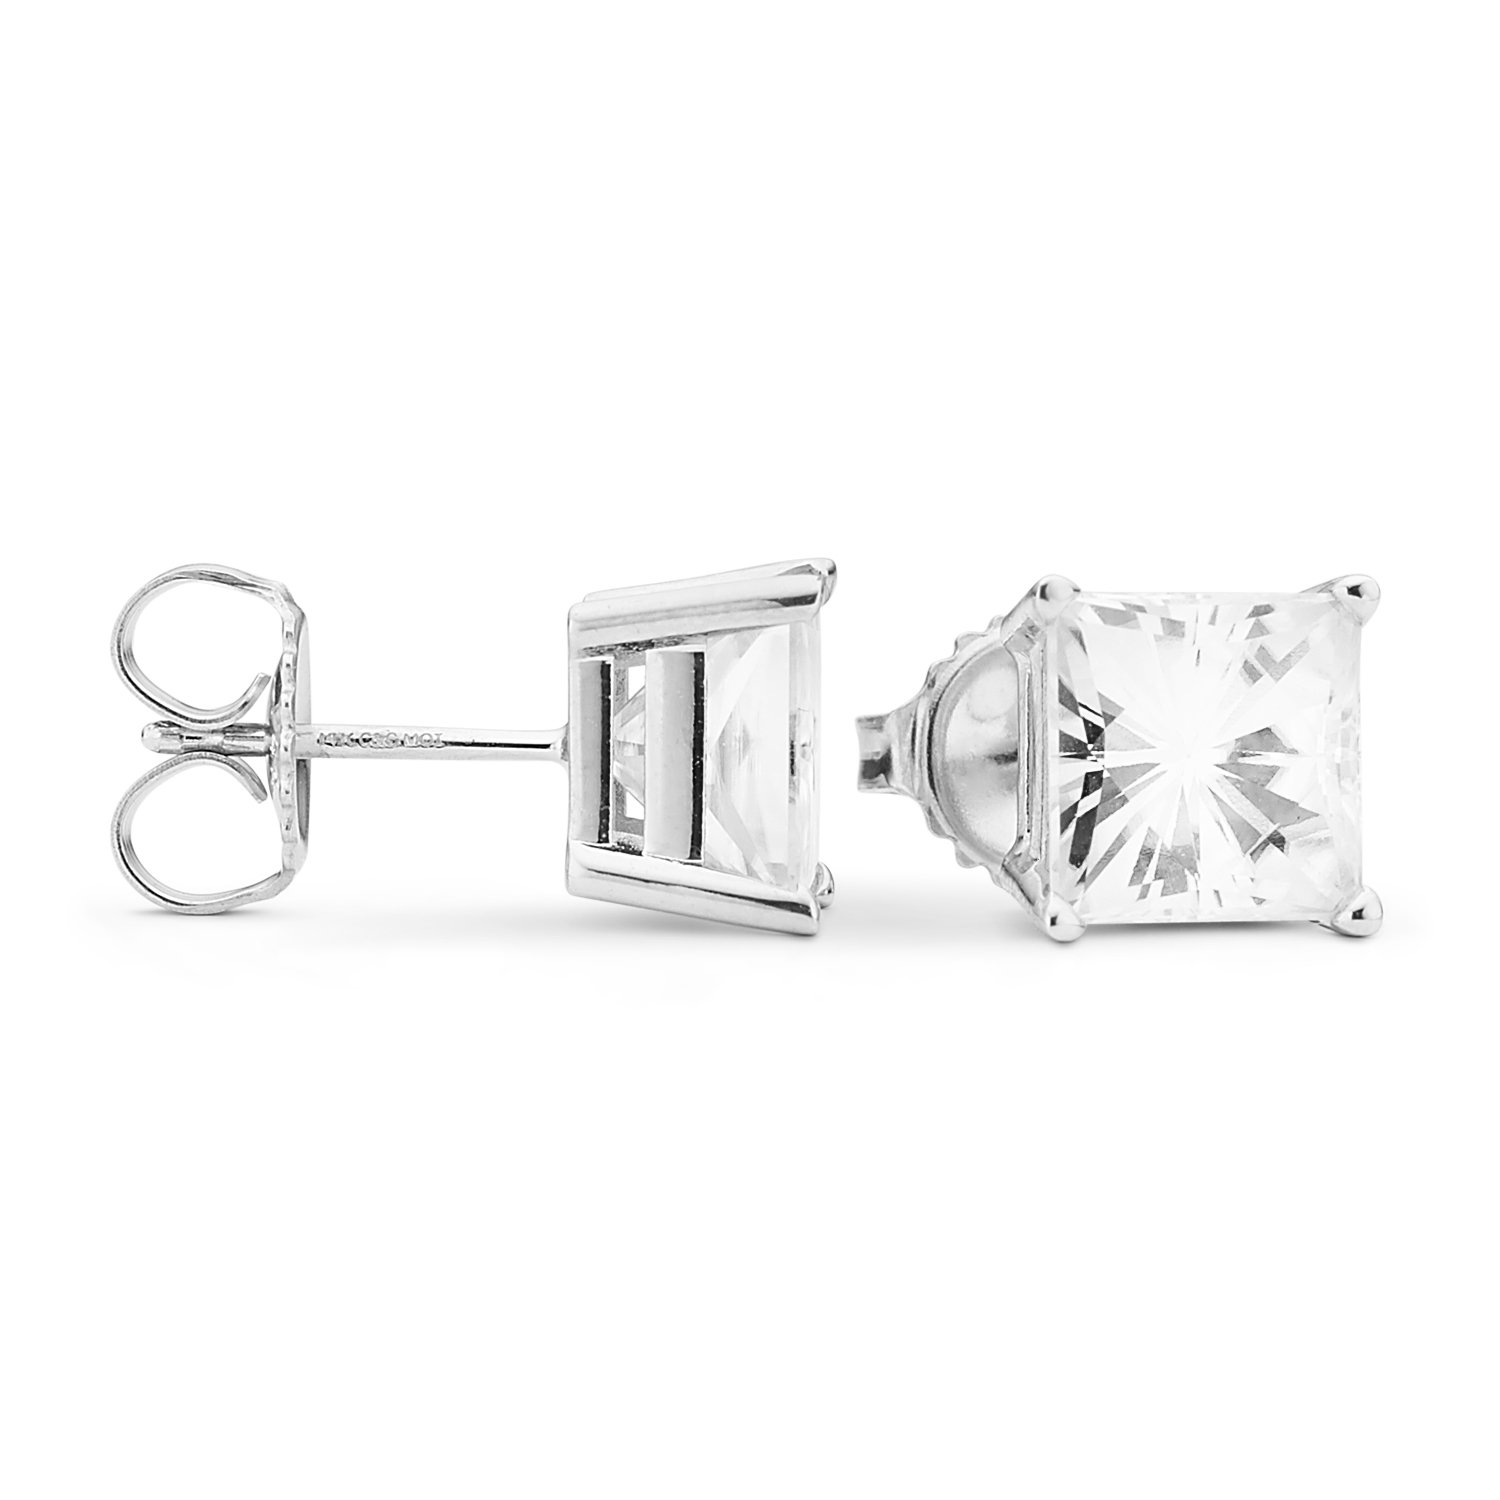 Forever Brilliant 7.0mm Square Moissanite Stud Earrings, 4.20cttw DEW By Charles & Colvard